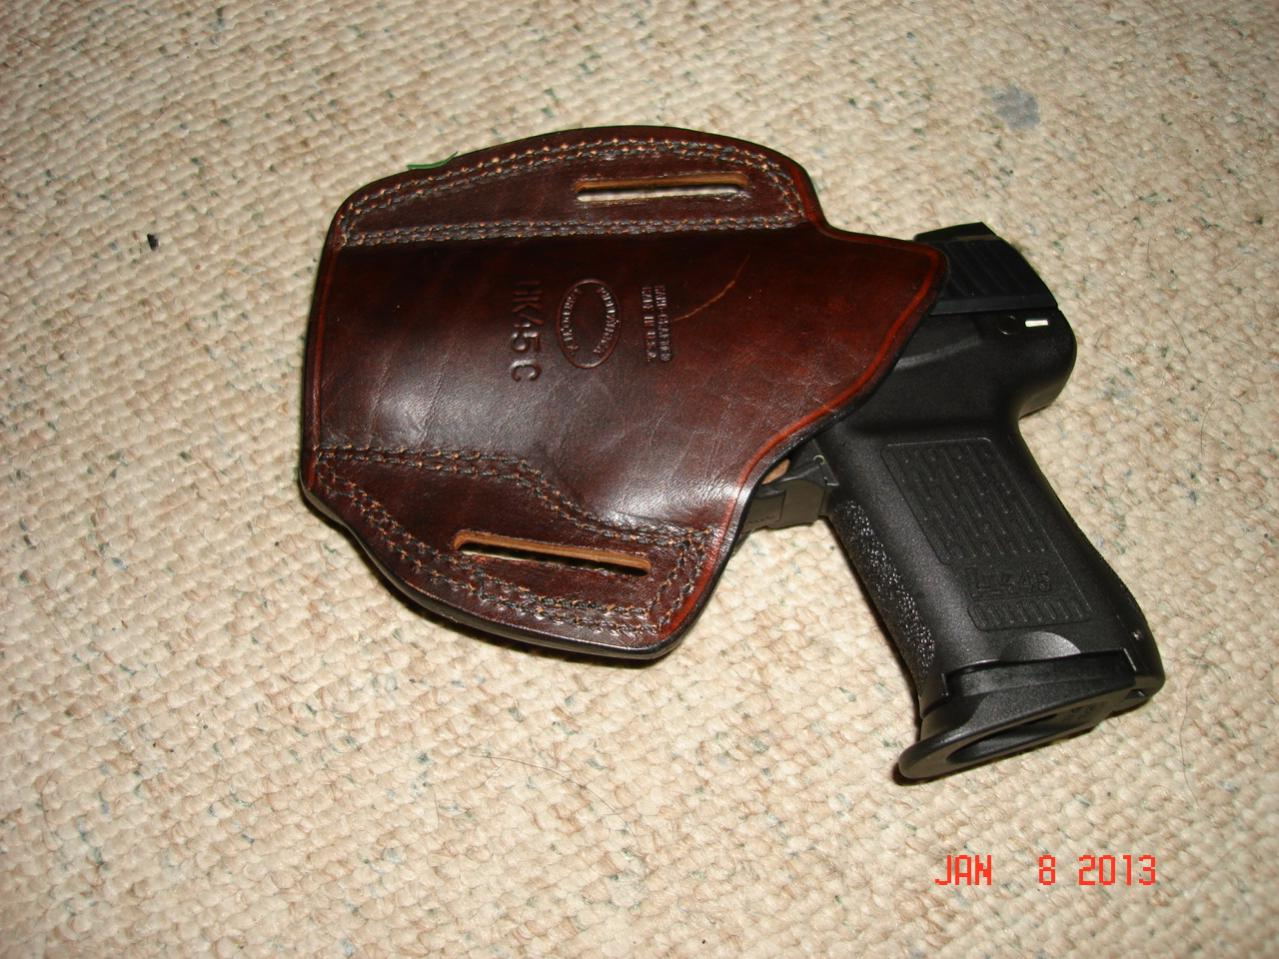 New Kirkpatrick Holster for HK-45c-holster-003.jpg